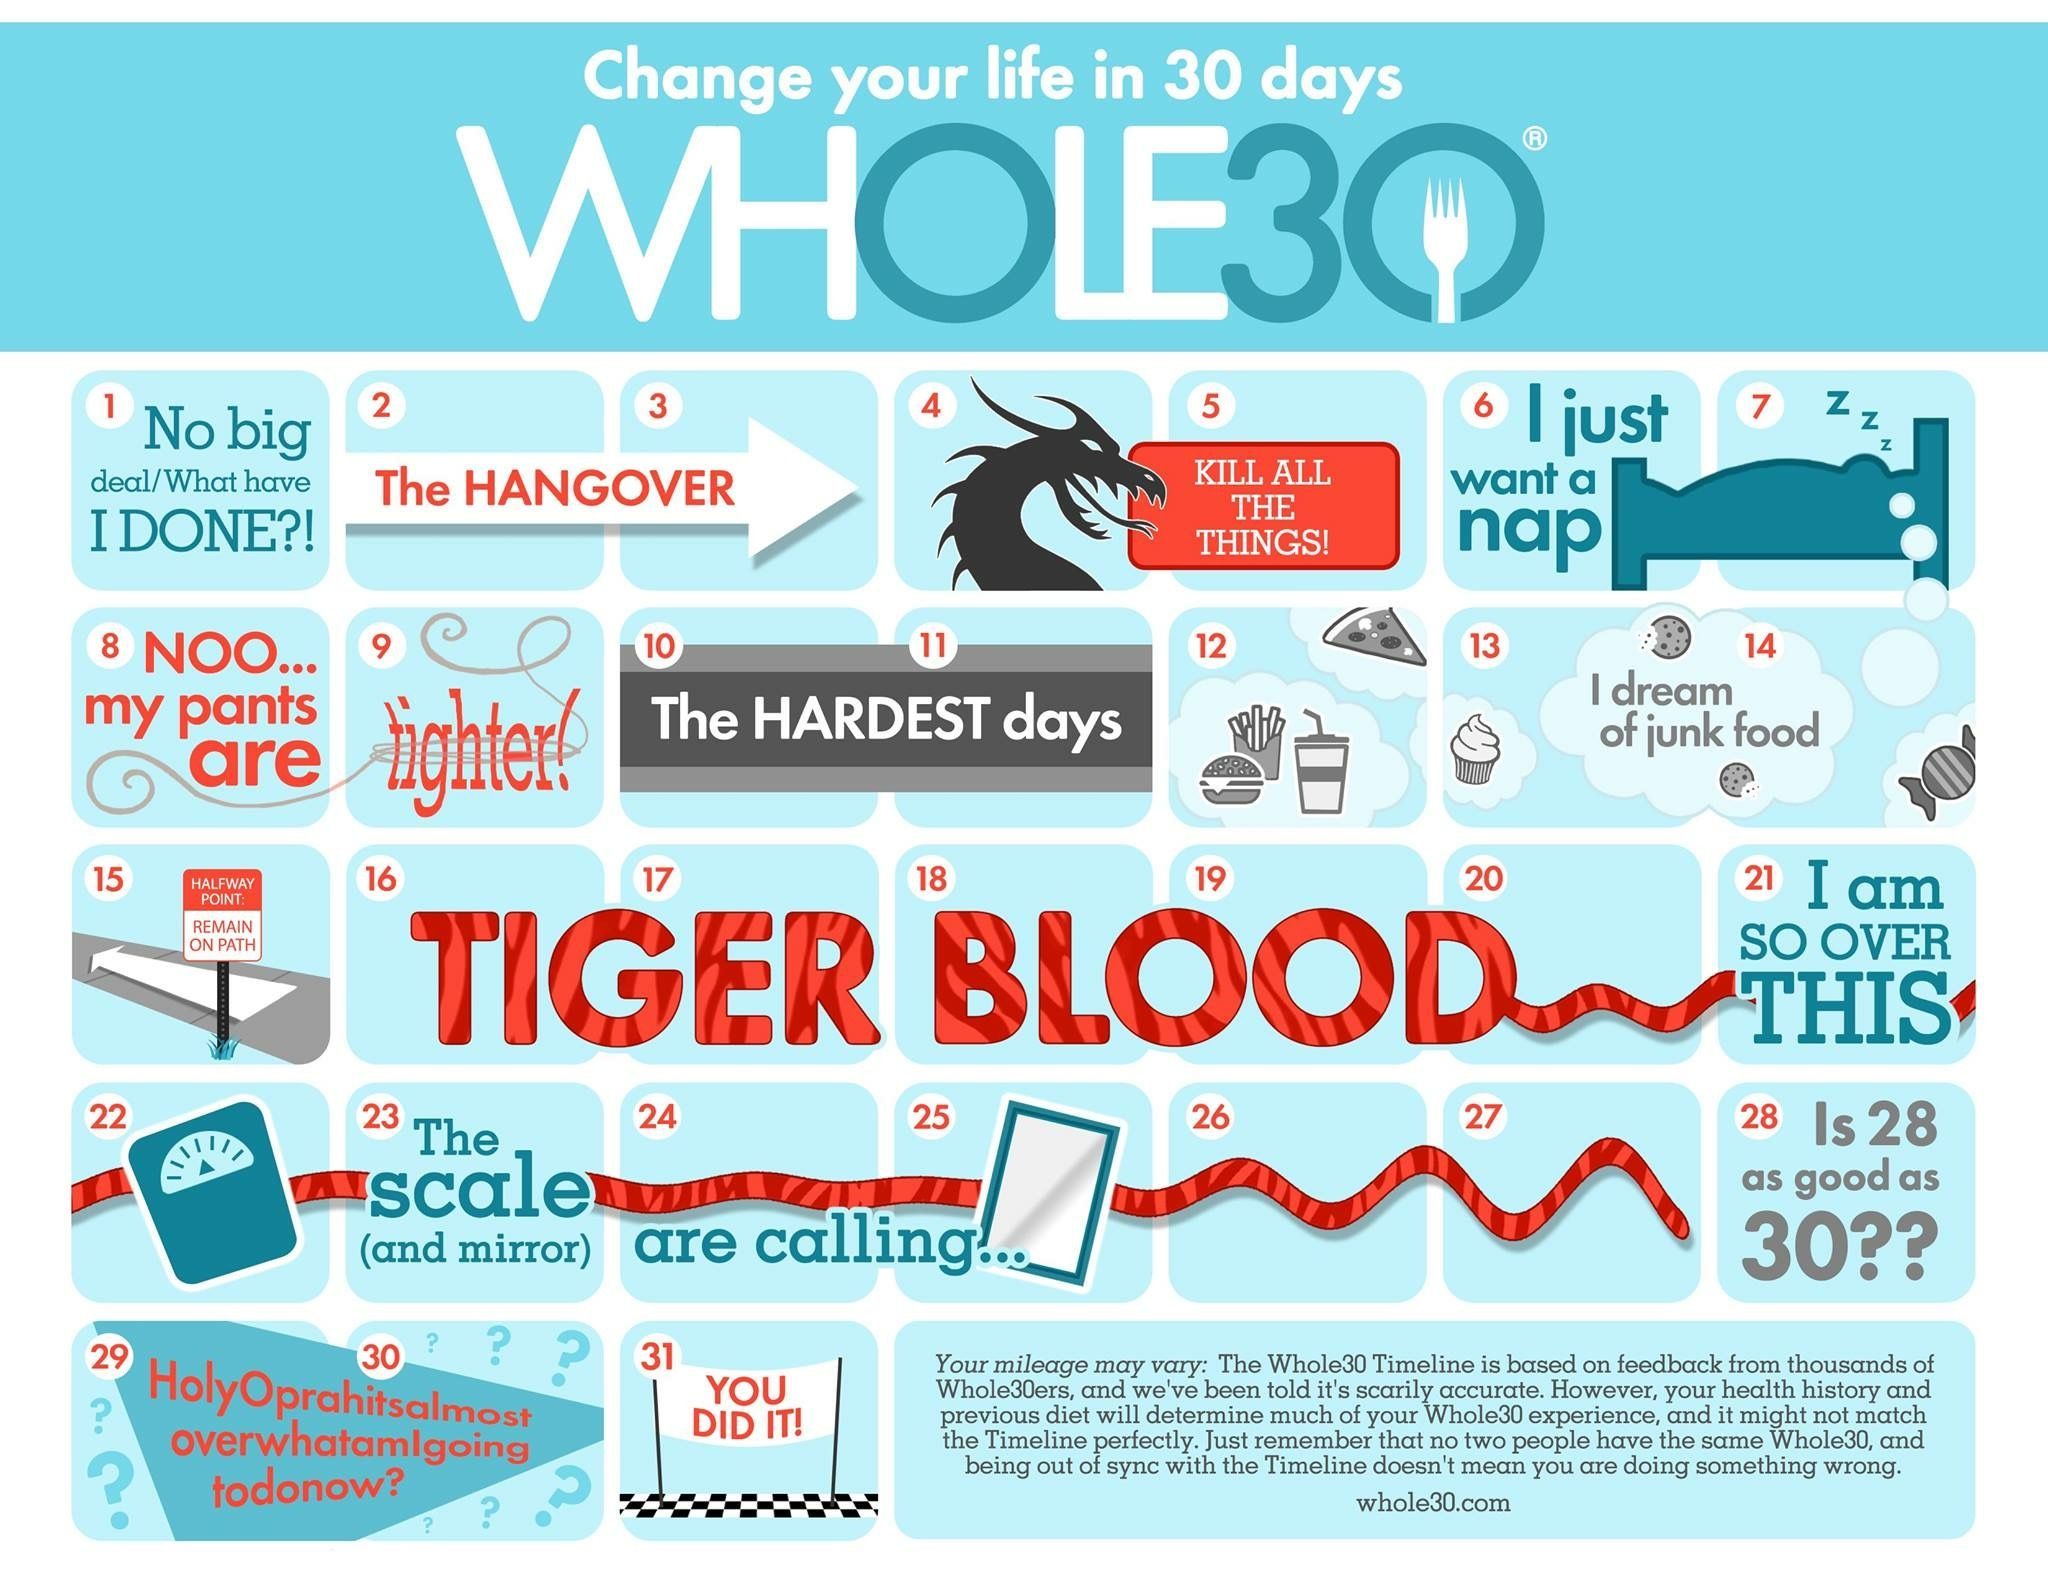 Whole 30 Calendar: What to expect day by day | Whole 30 ...